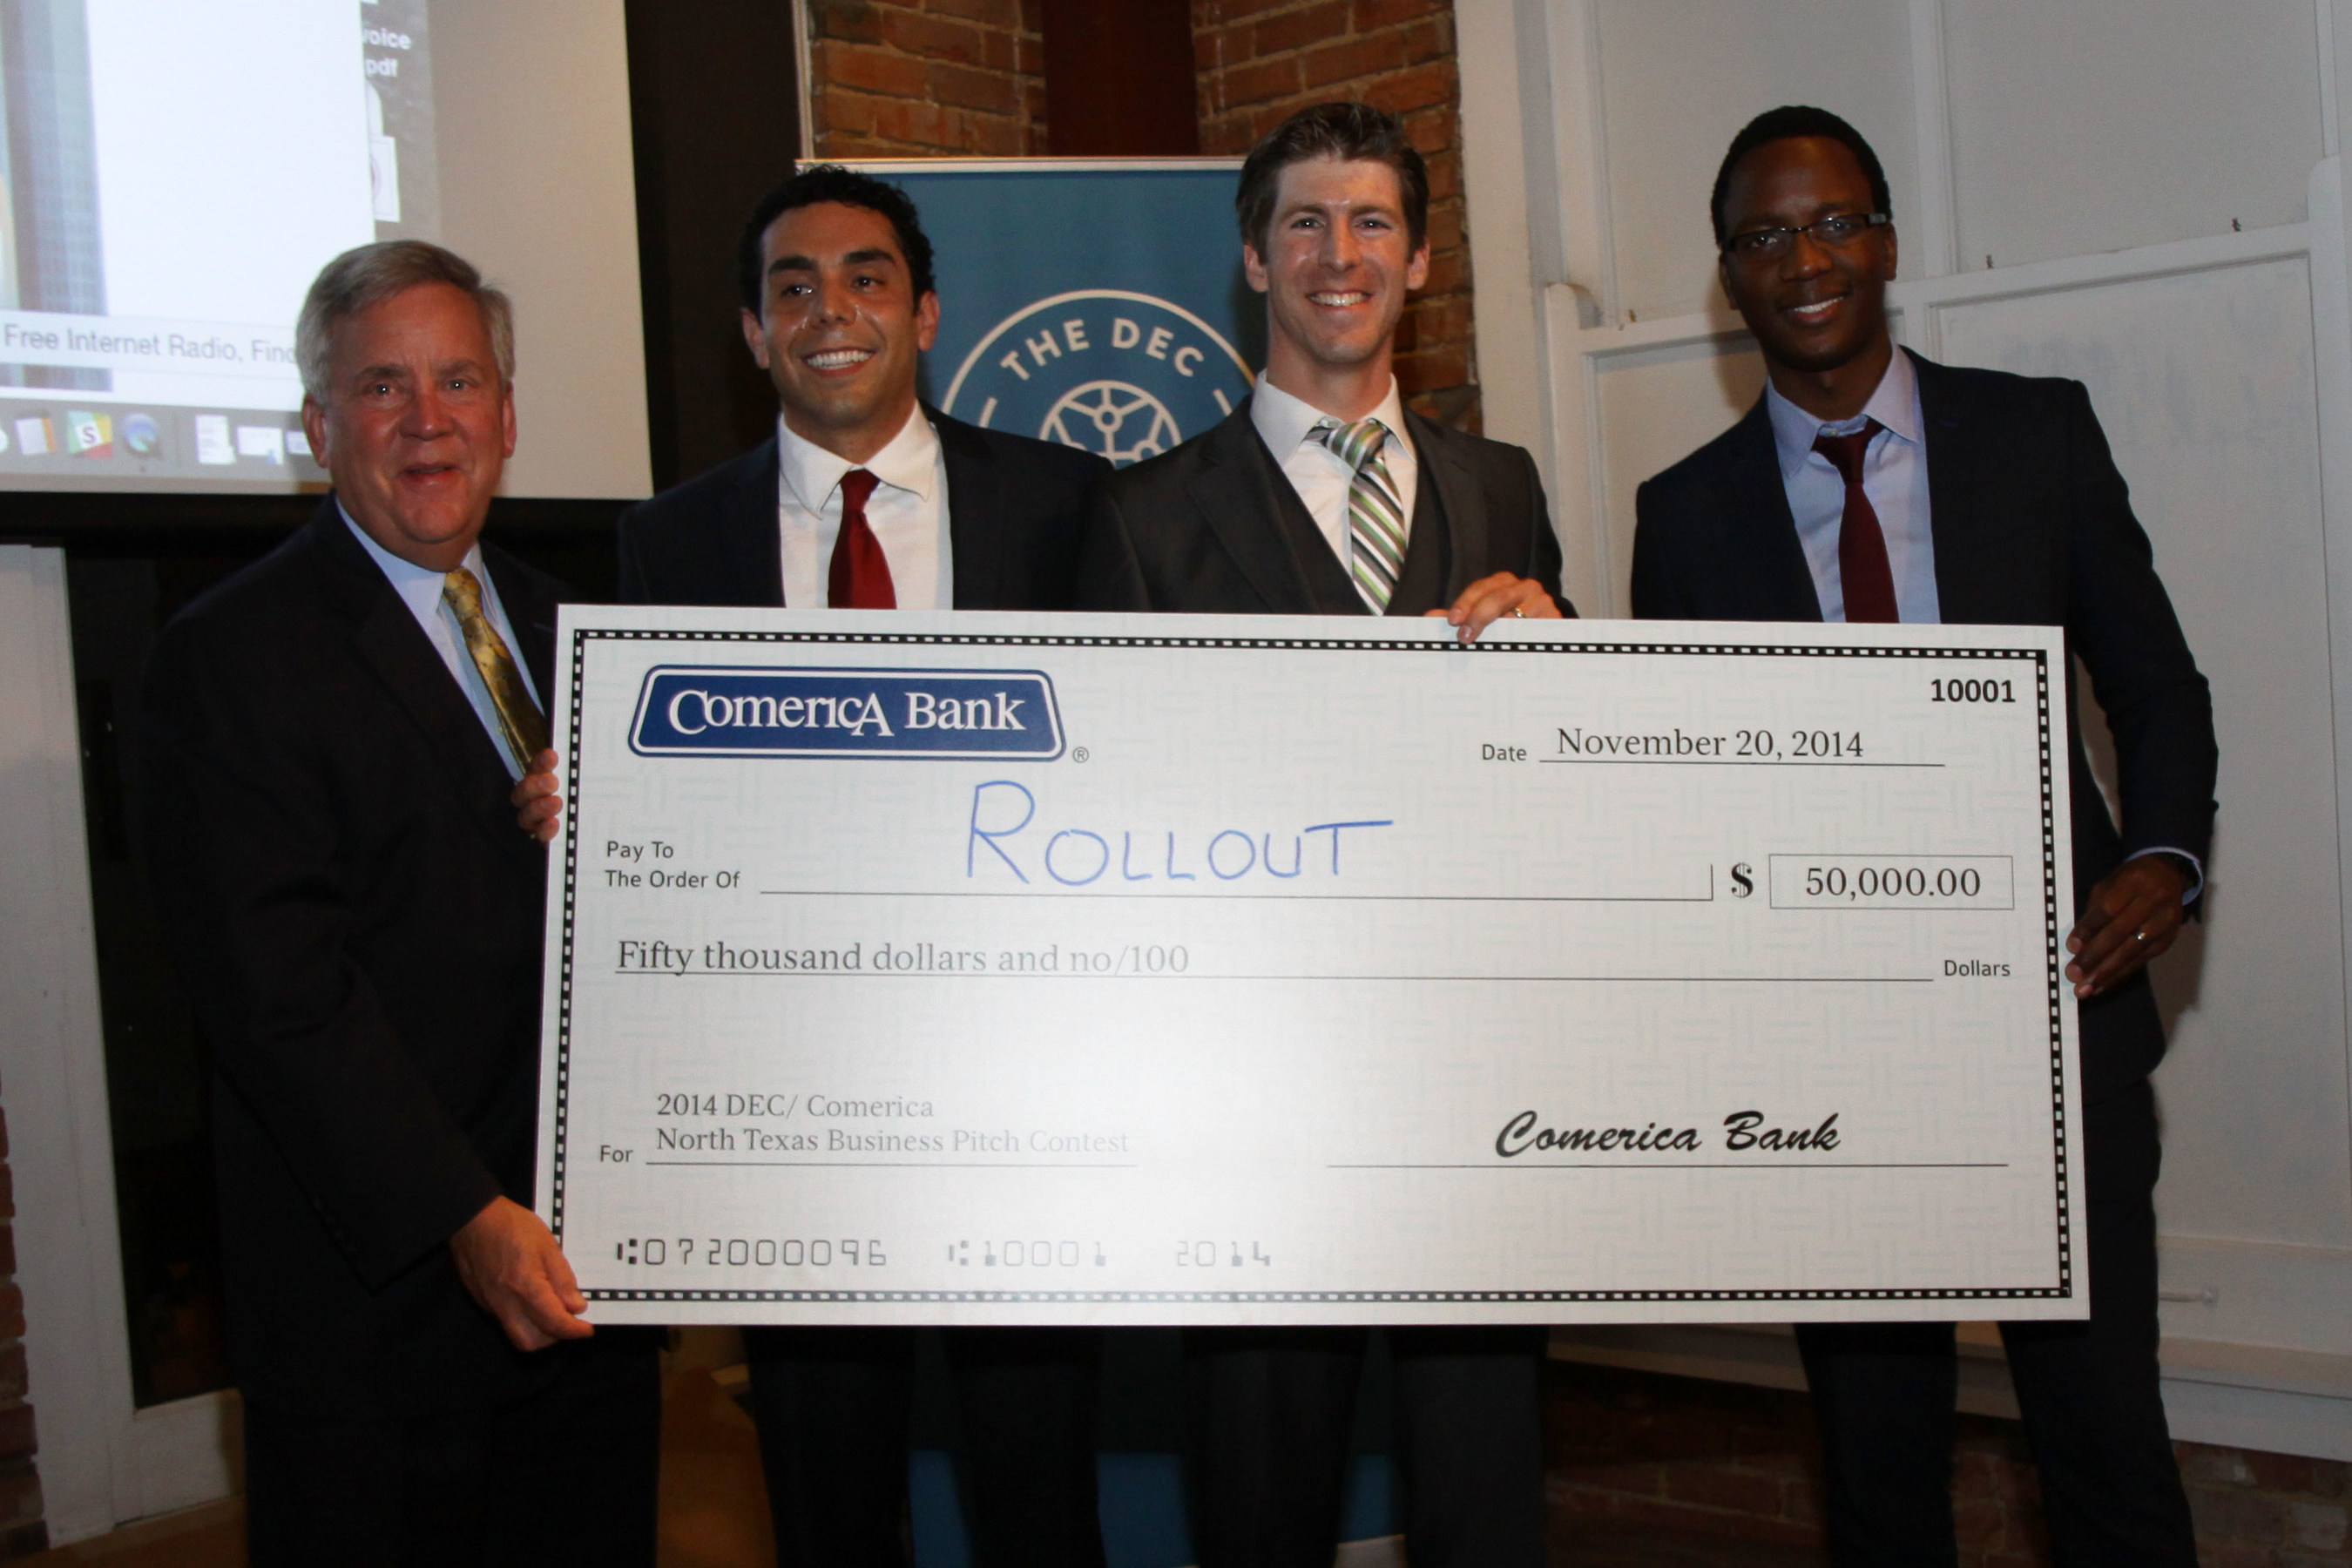 Pat Faubion, Texas Market President for Comerica Bank (far left), presents the $50,000 check to Rollout, Inc., ...